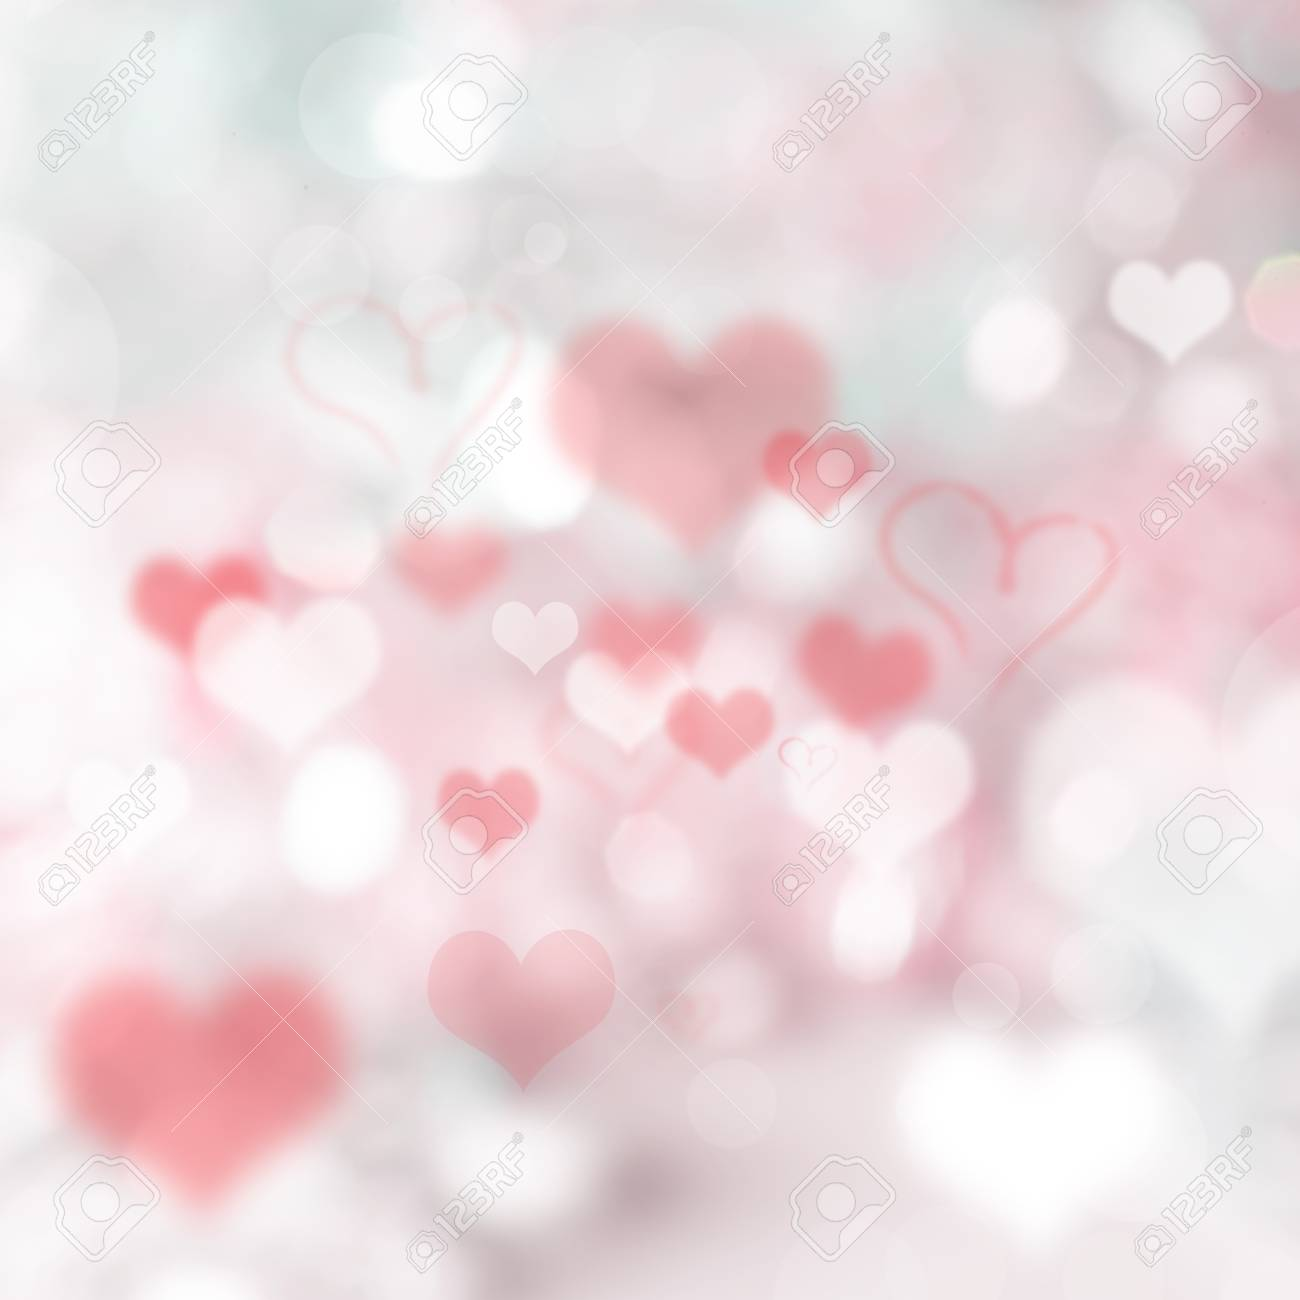 Valentine Gift Abstract Background Wallpaper Stock Photo Picture